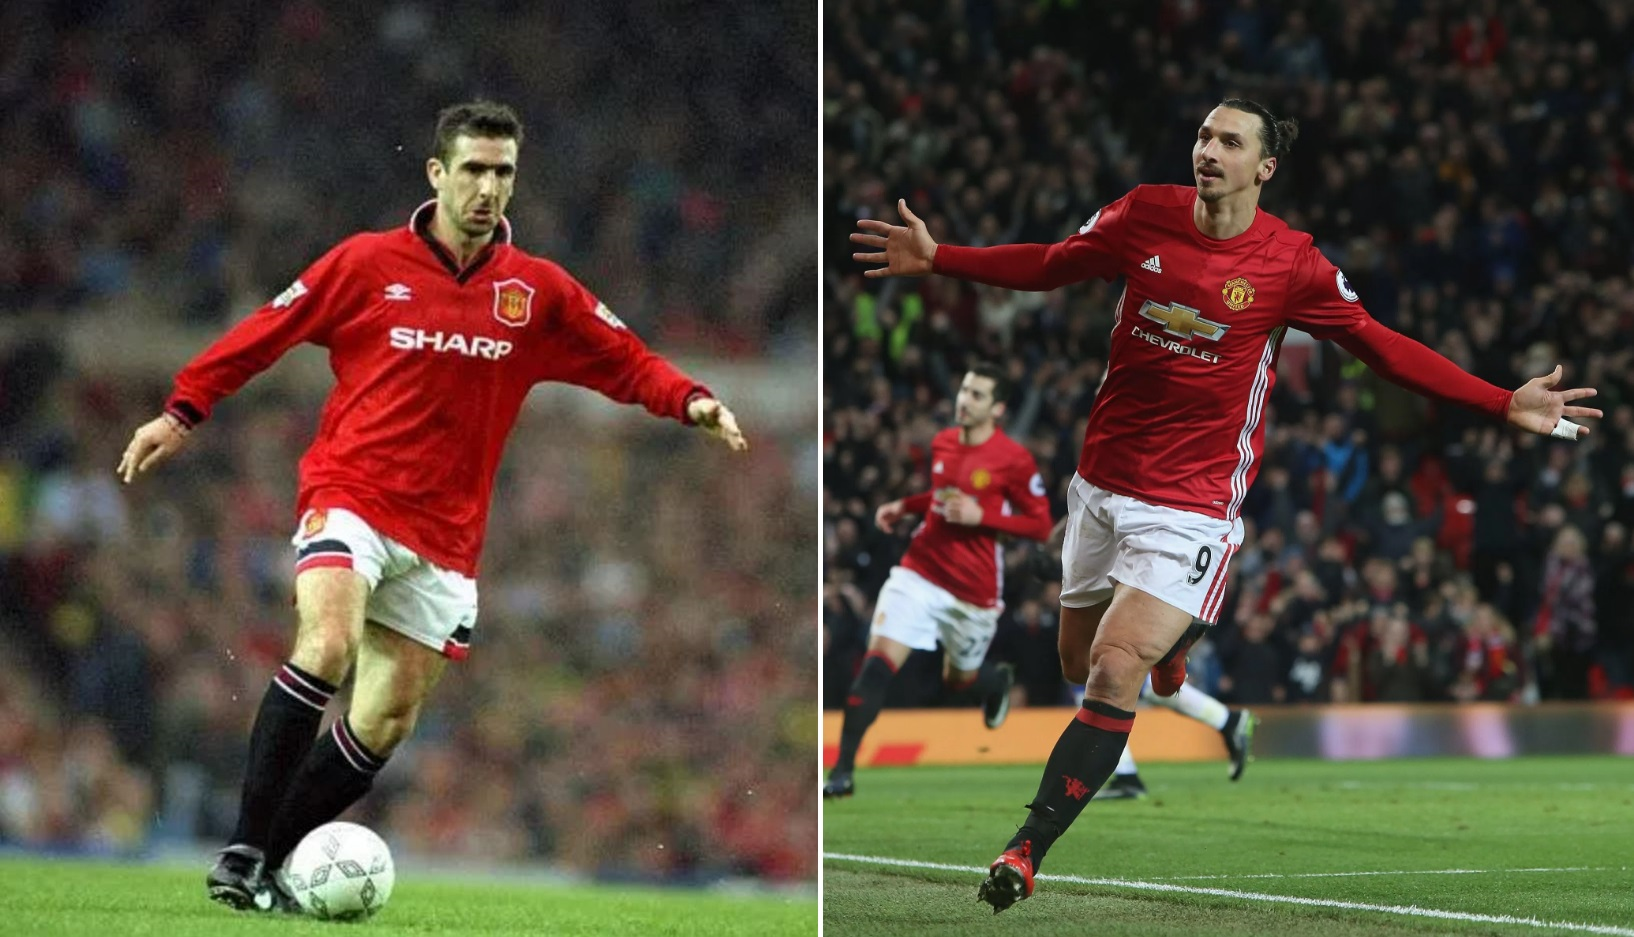 Zlatan Ibrahimovic's impact on Manchester United is comparable to Eric Cantona's, claims Class of '92 legend